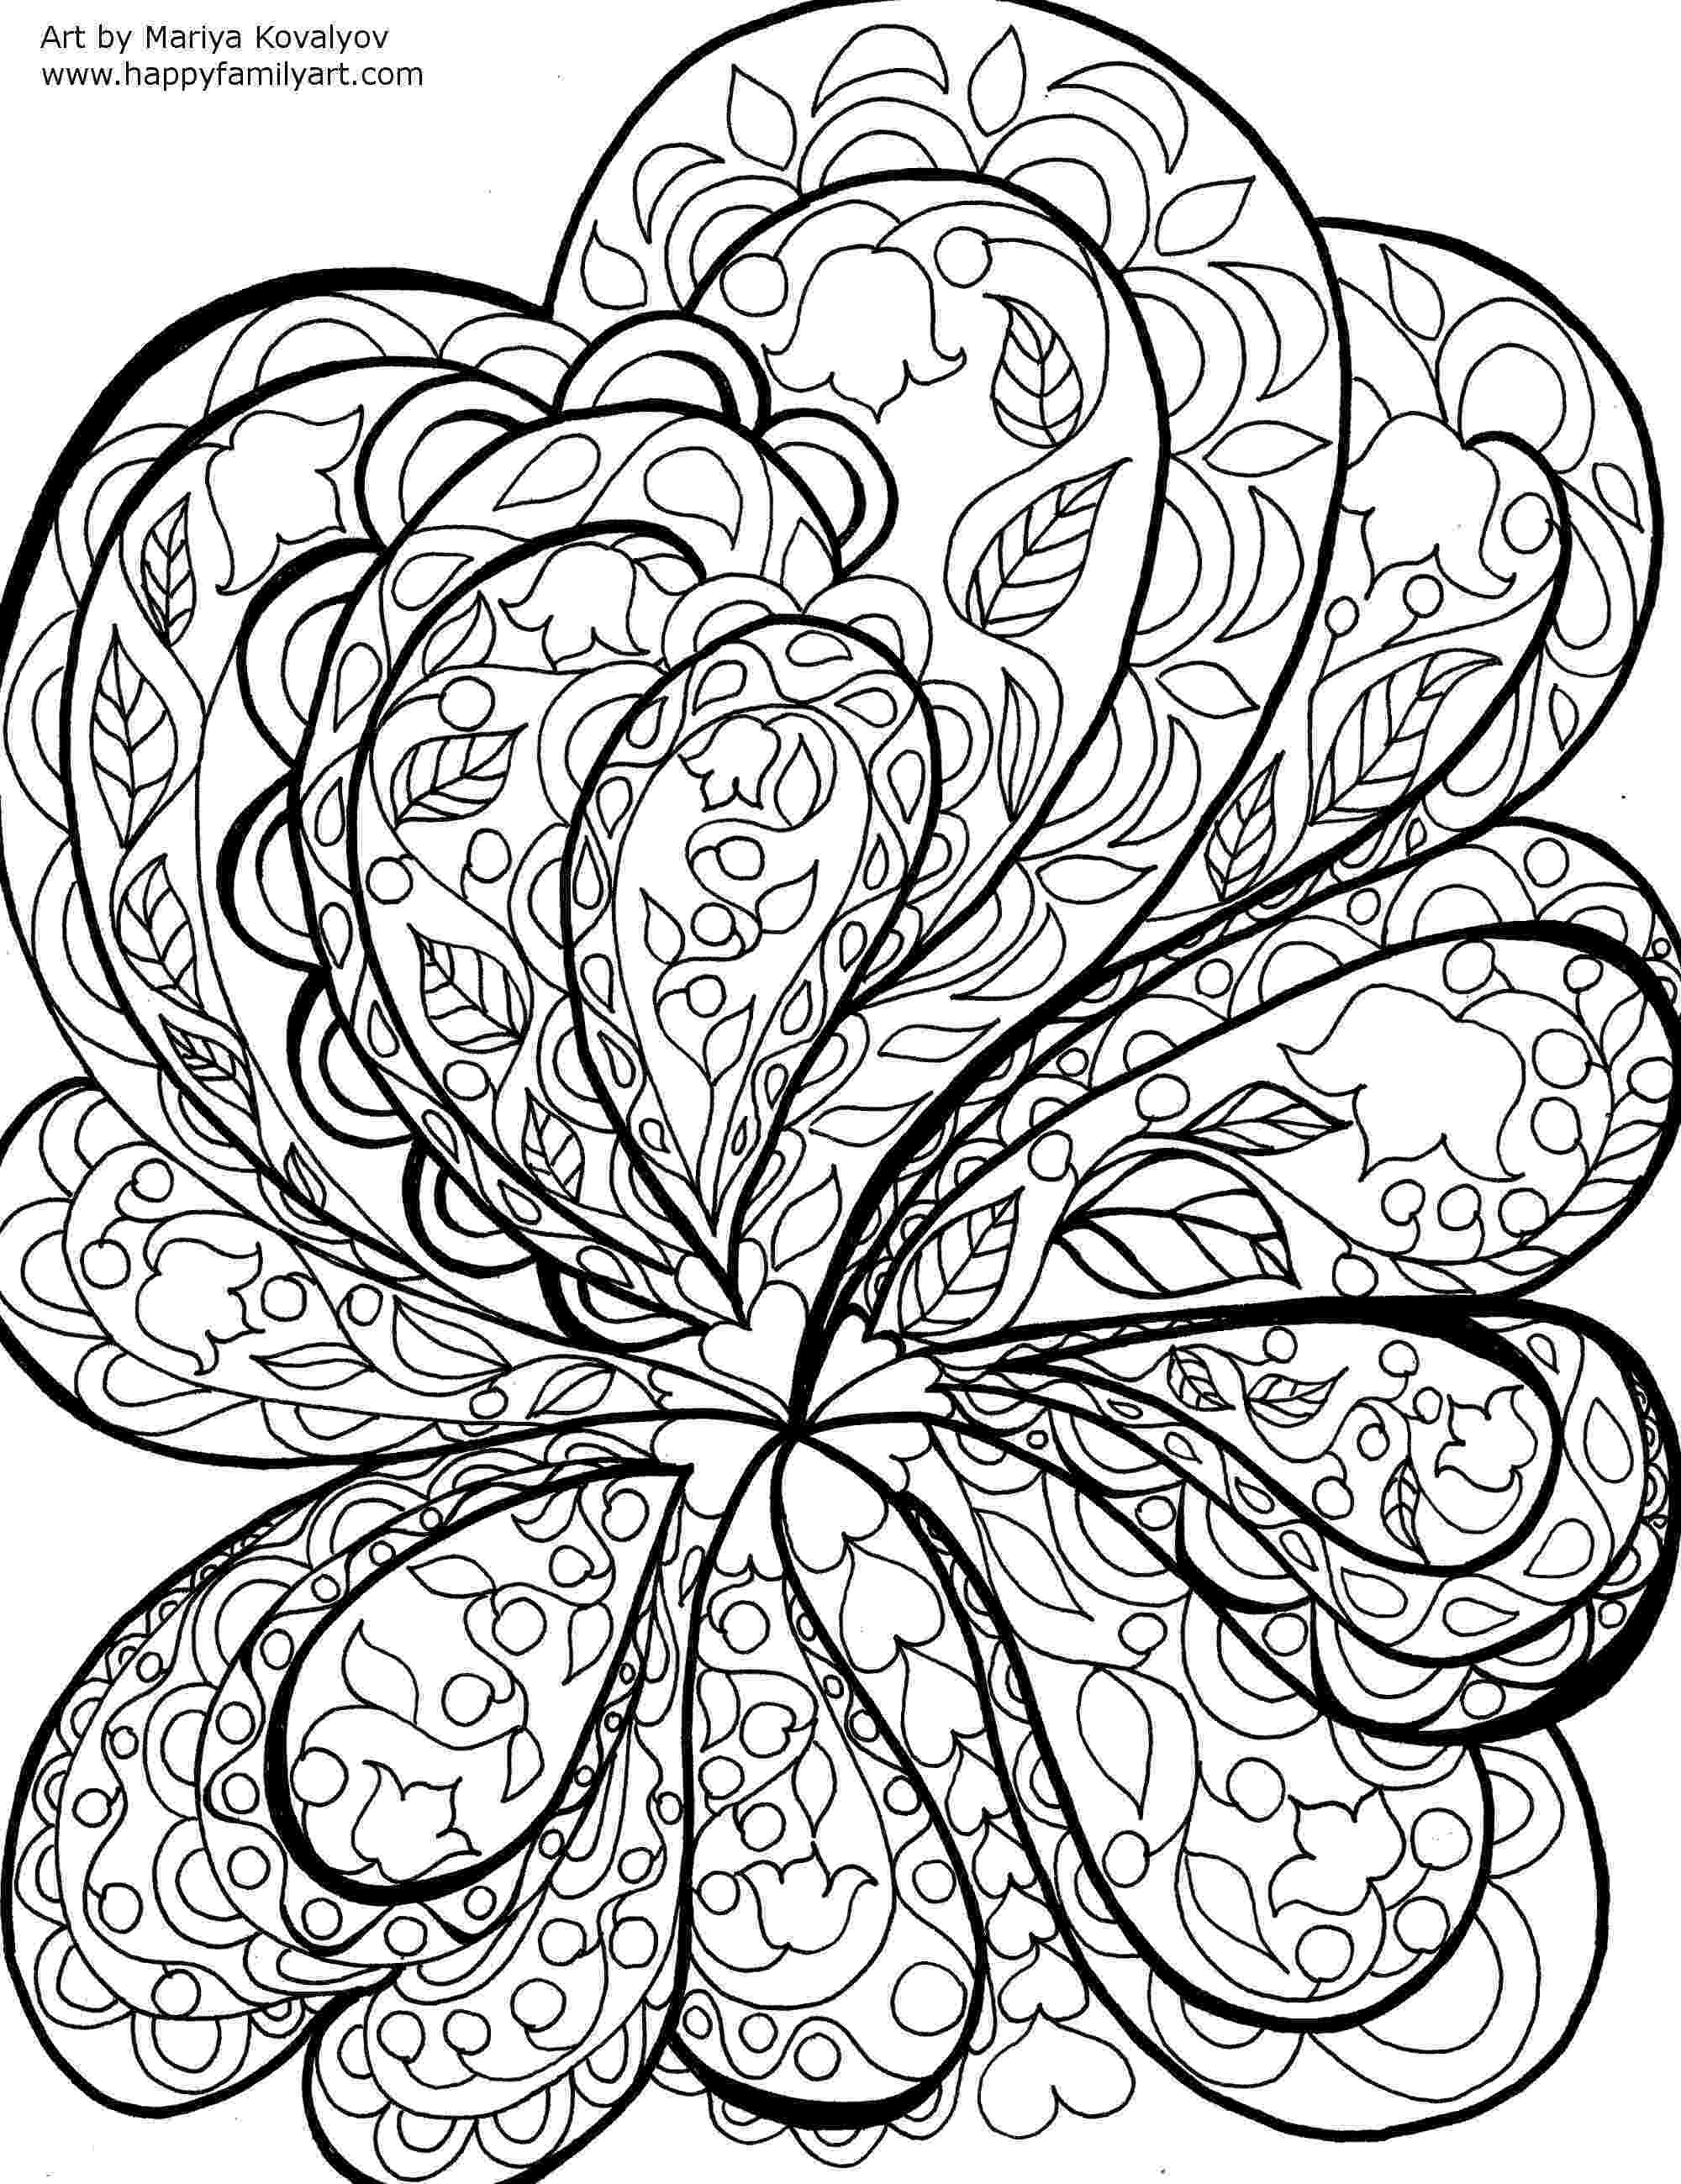 abstract coloring pages for adults and artists abstract designs to color on demand 2nd edition of artists pages adults and coloring for abstract